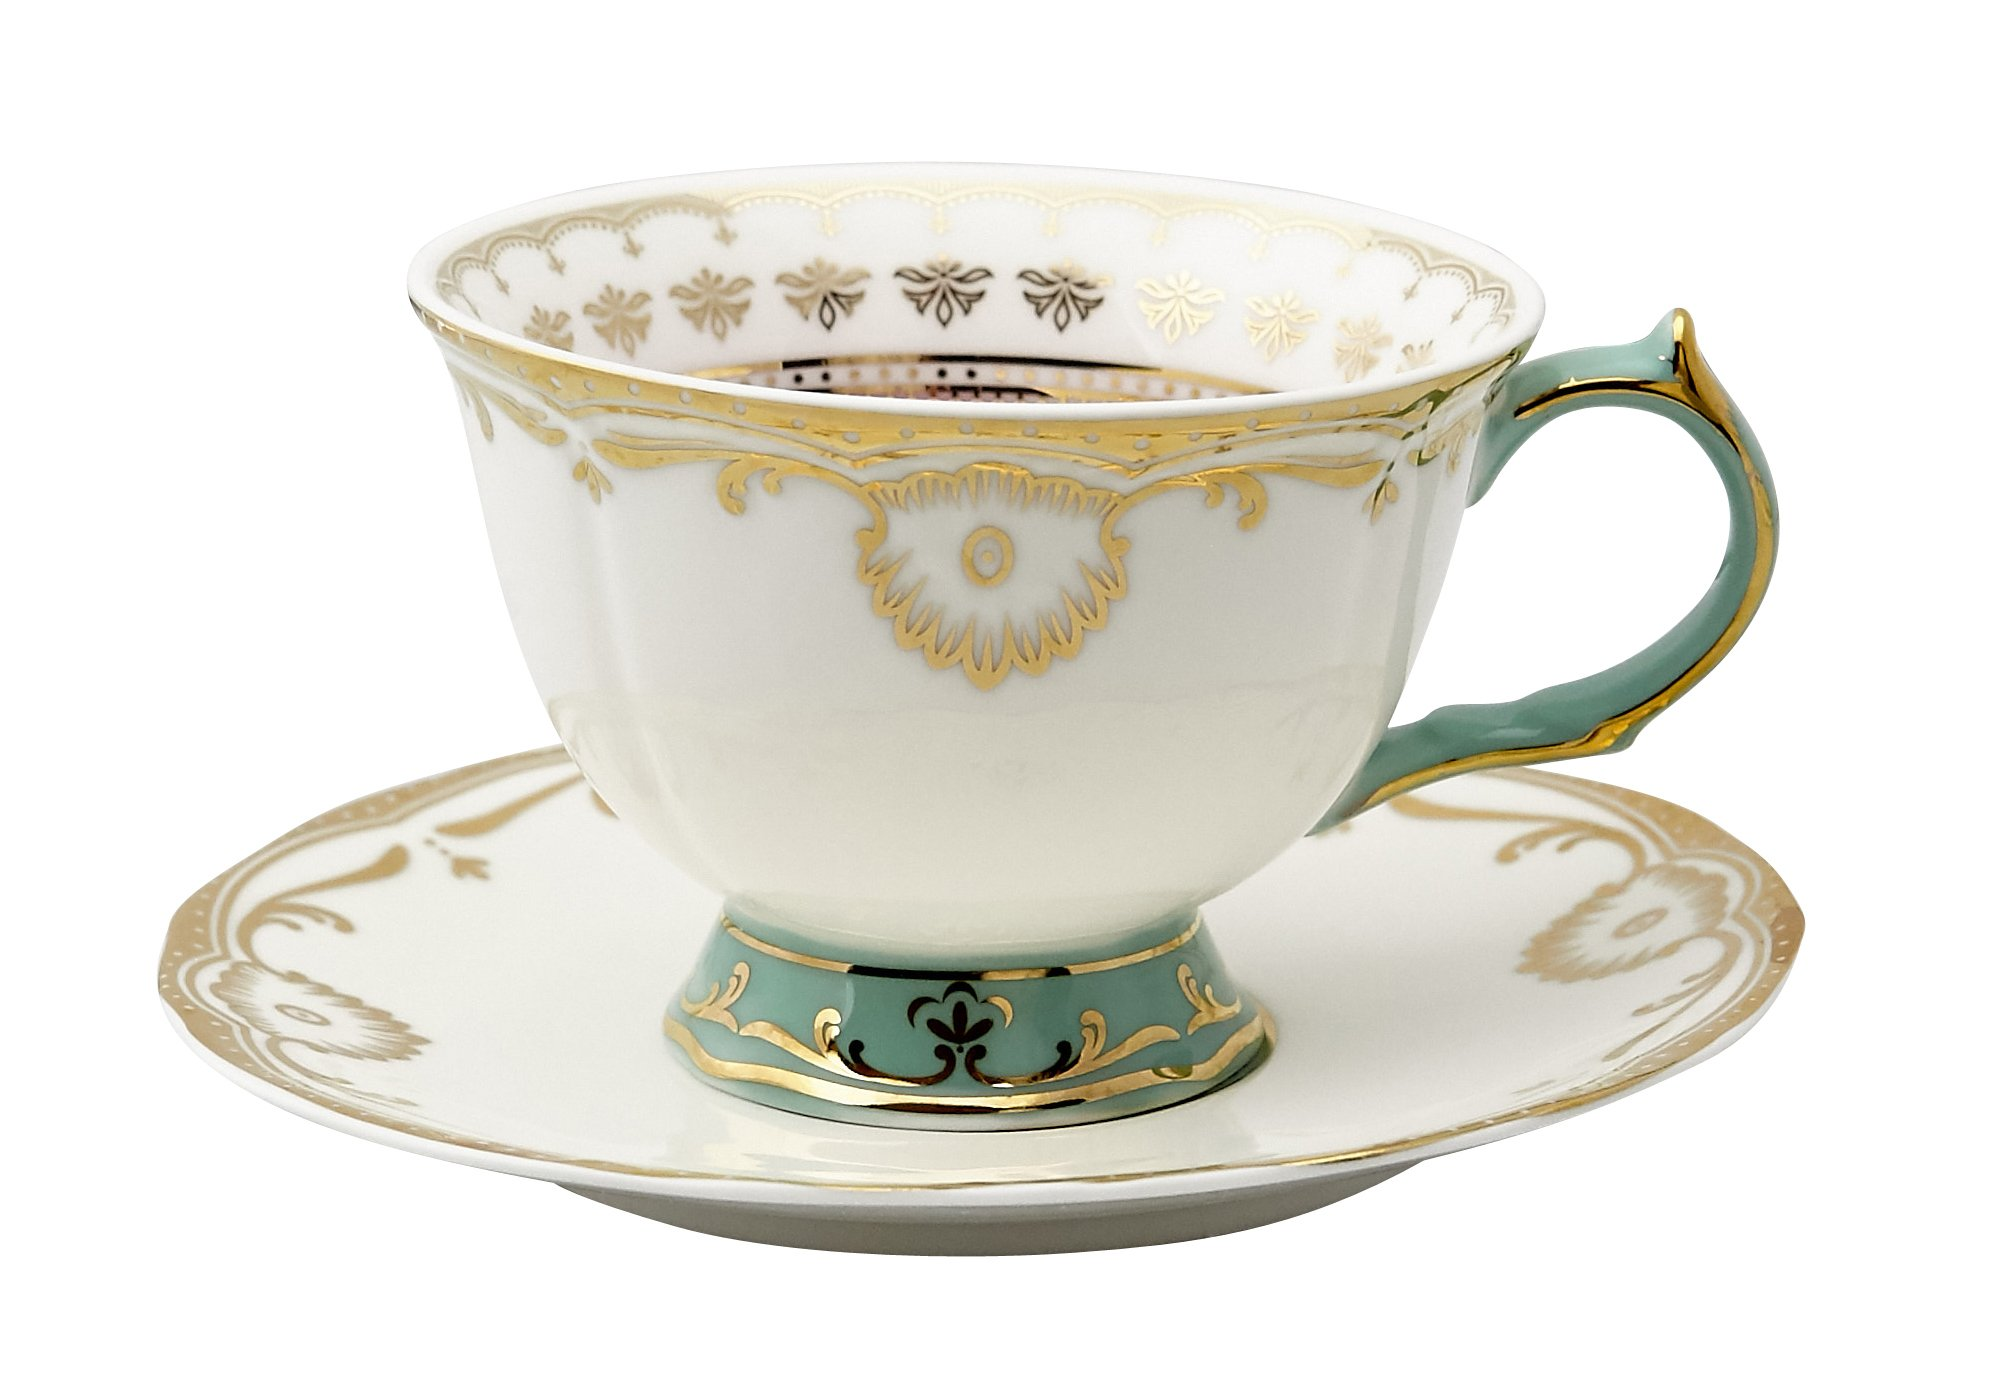 Pretty Little Teacups Cup and Saucer Set White in Gift Box